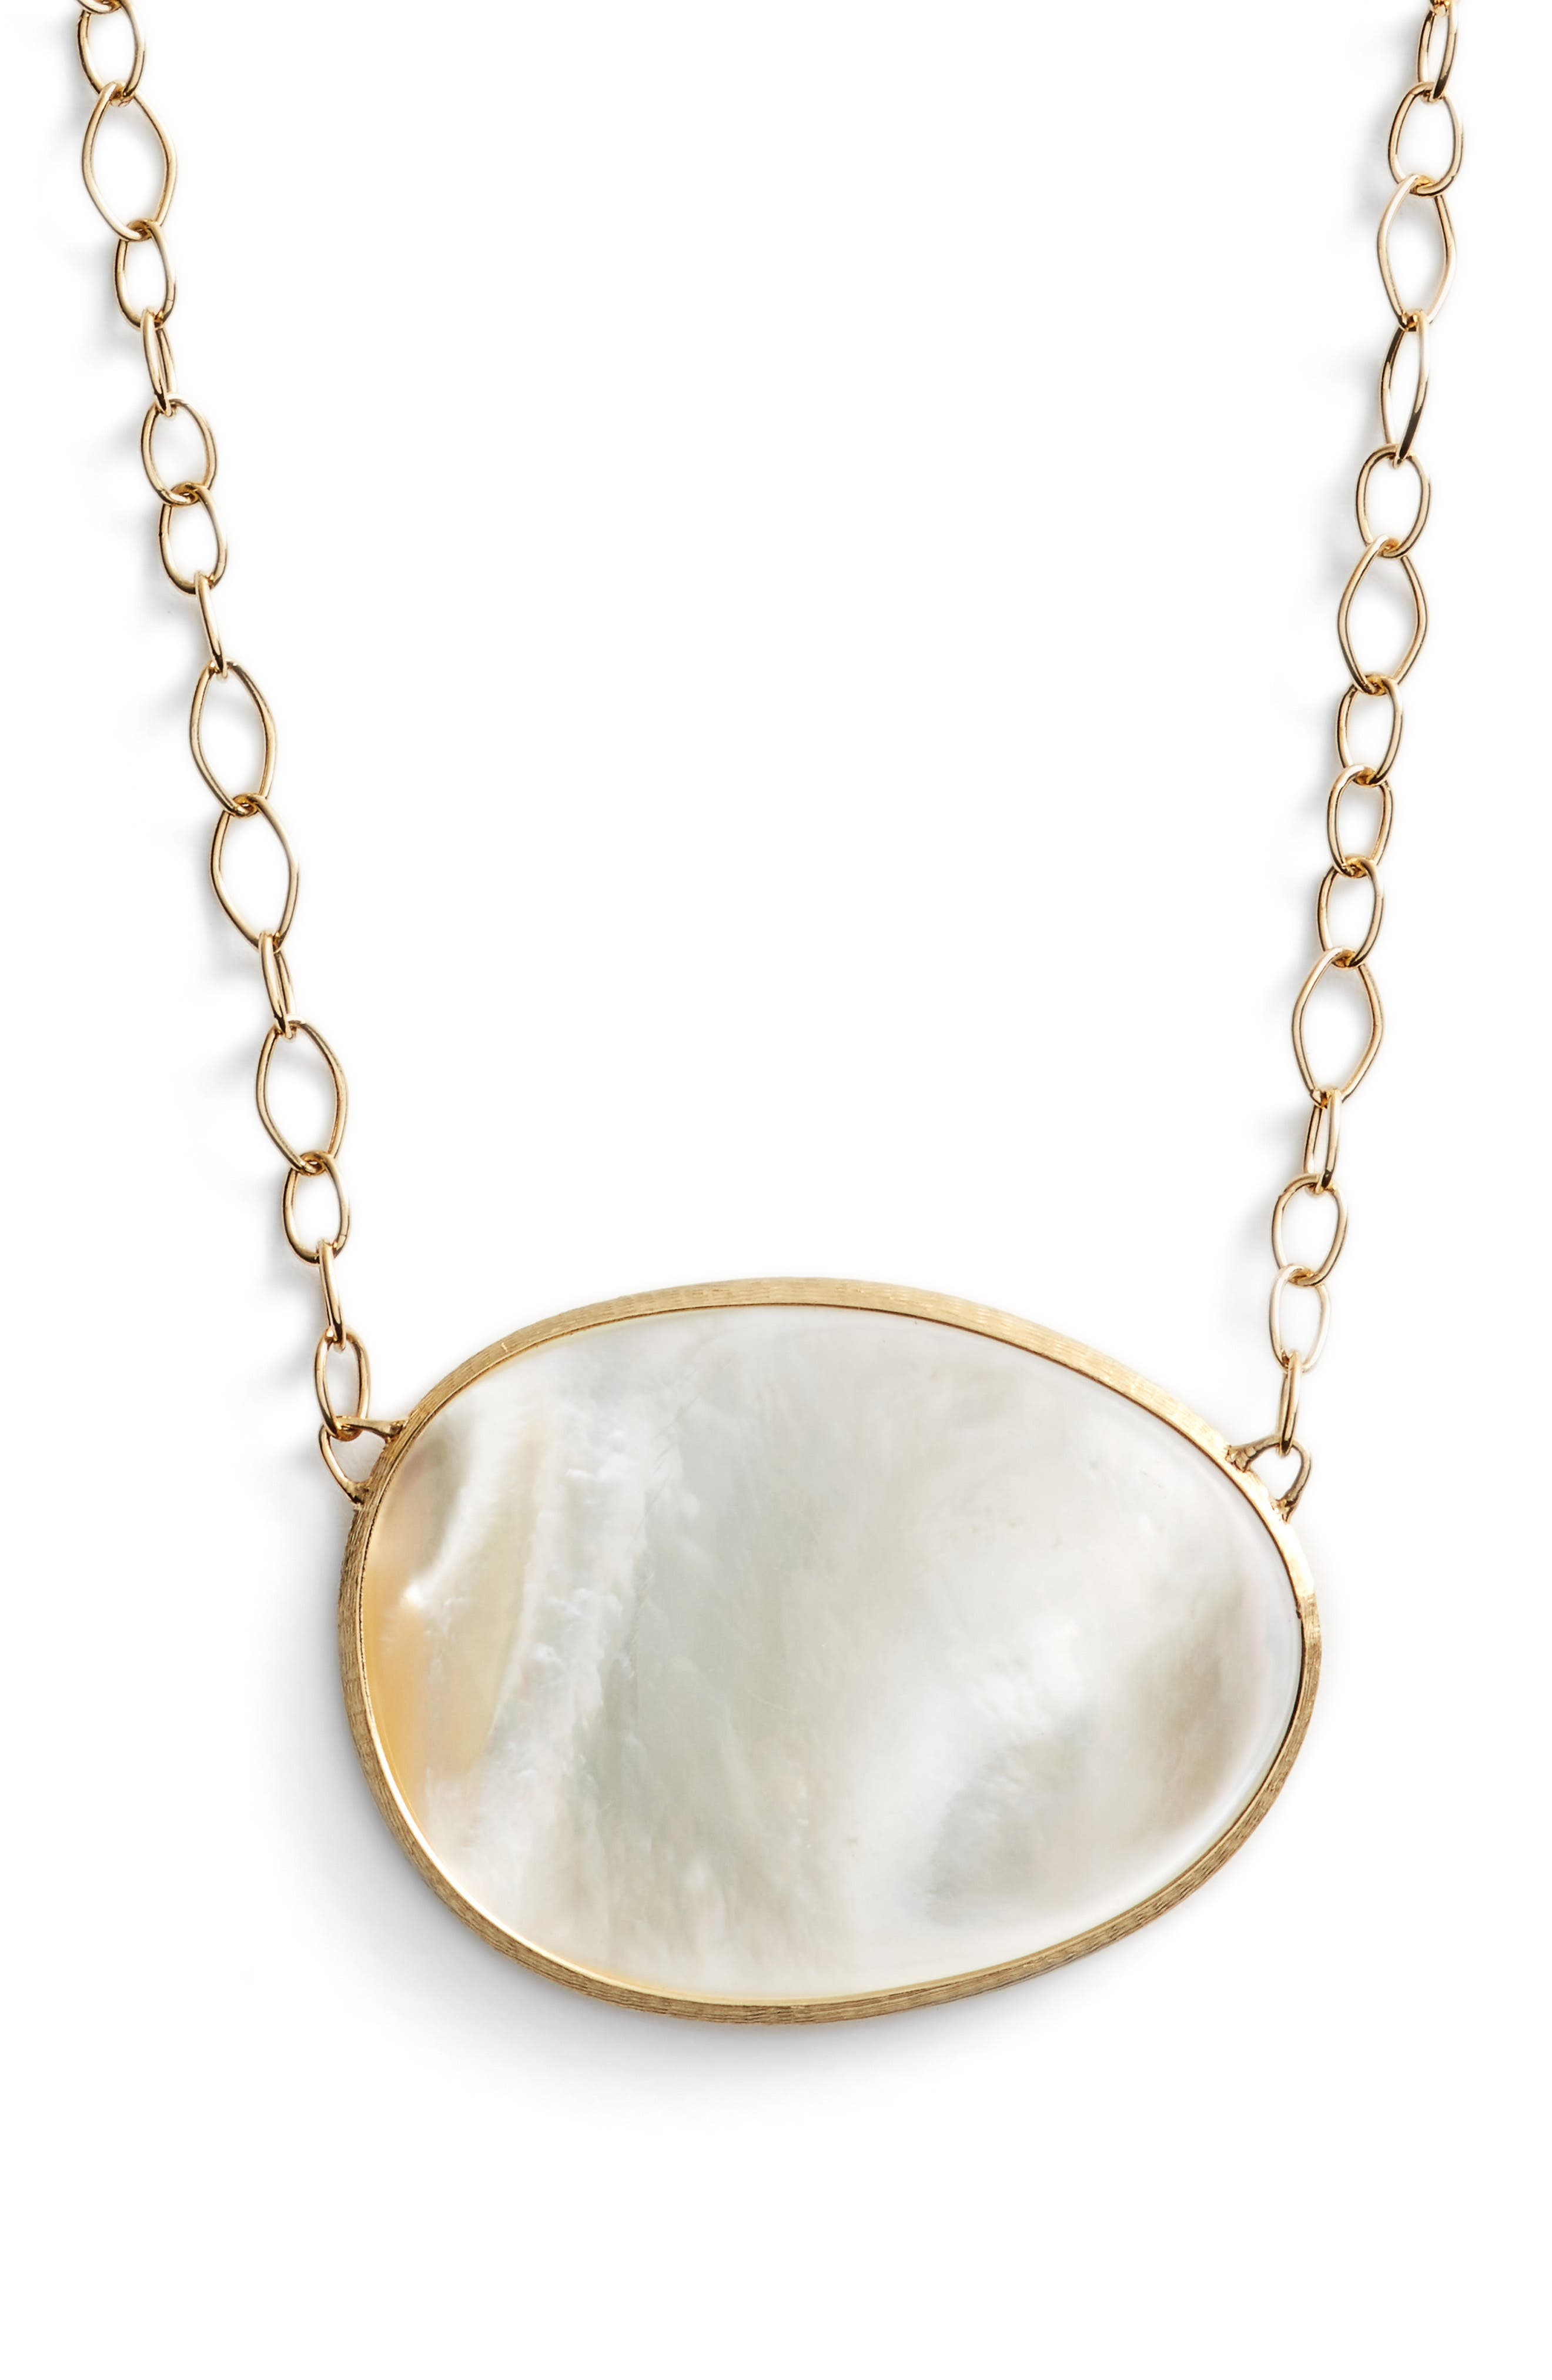 Marco Bicego Lunaria Mother of Pearl Pendant Necklace